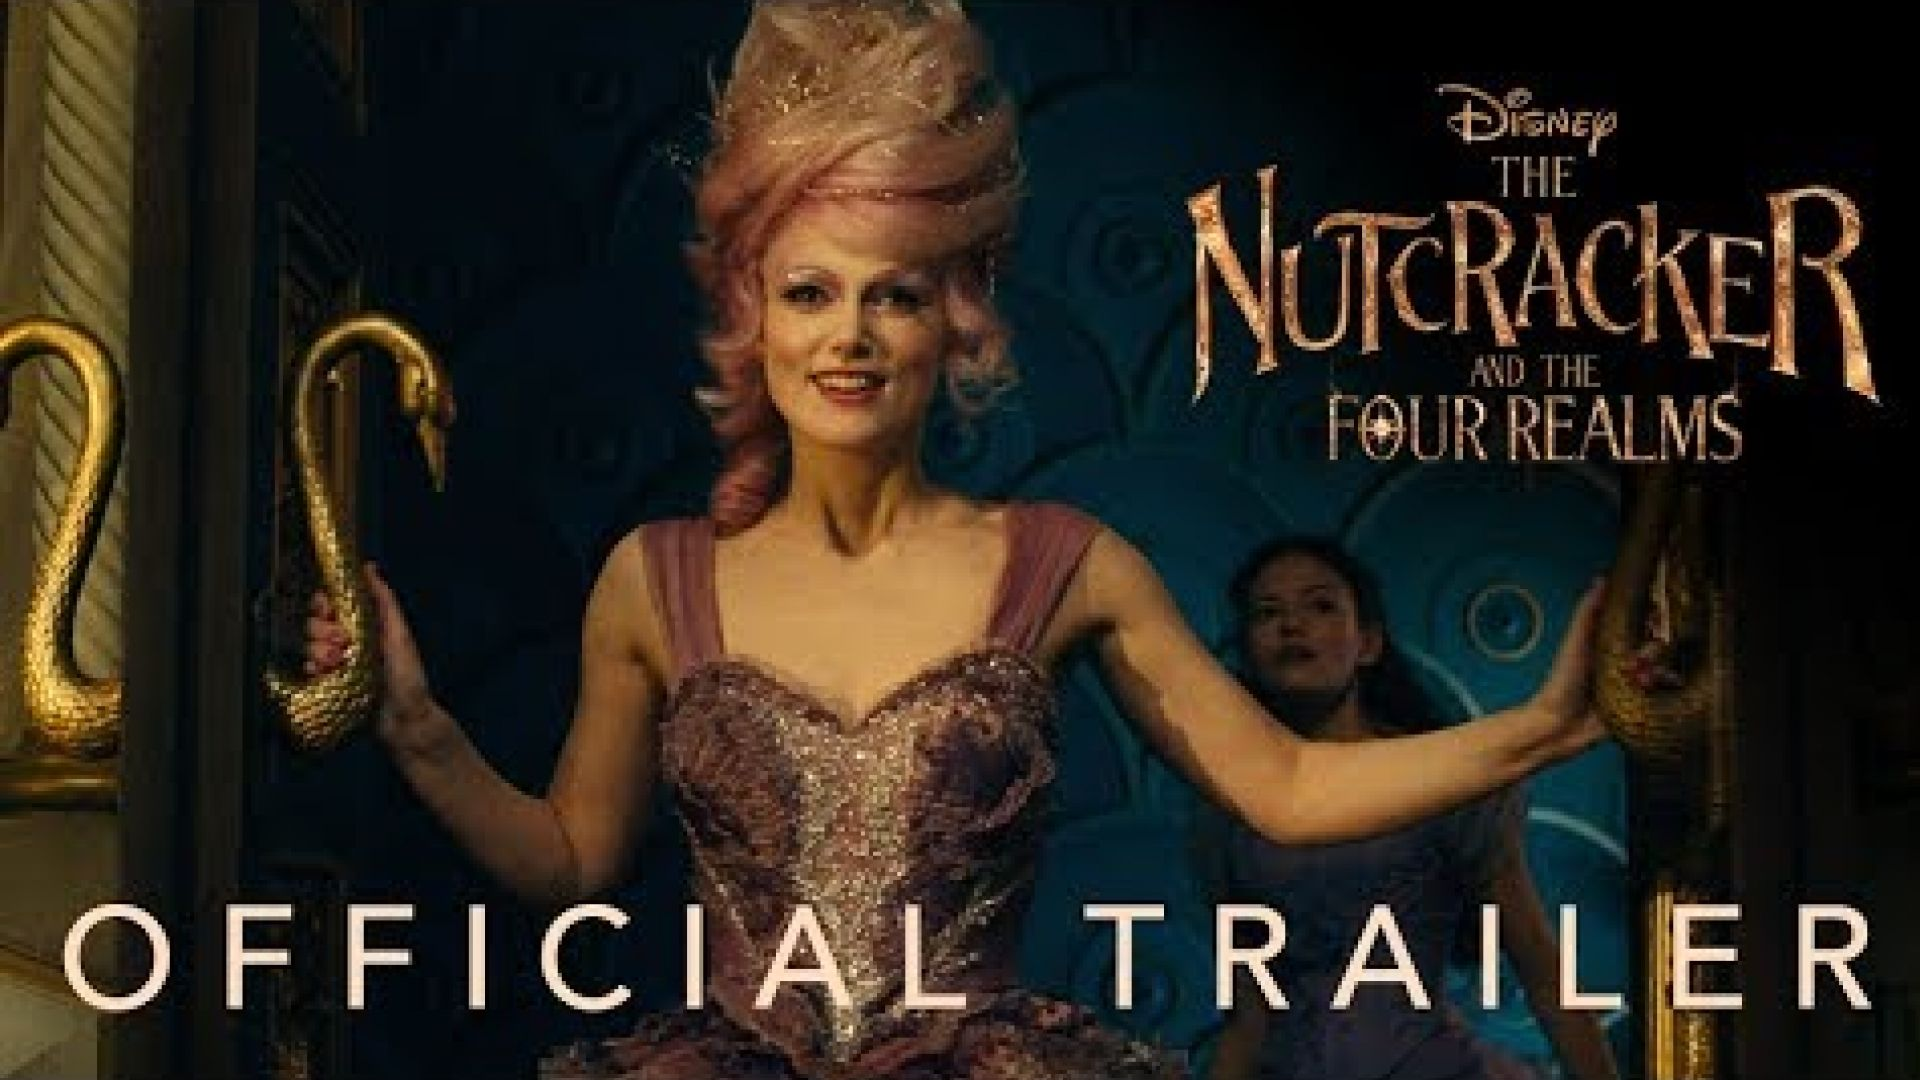 Disney's The Nutcracker And The Four Realms Teaser Trailer